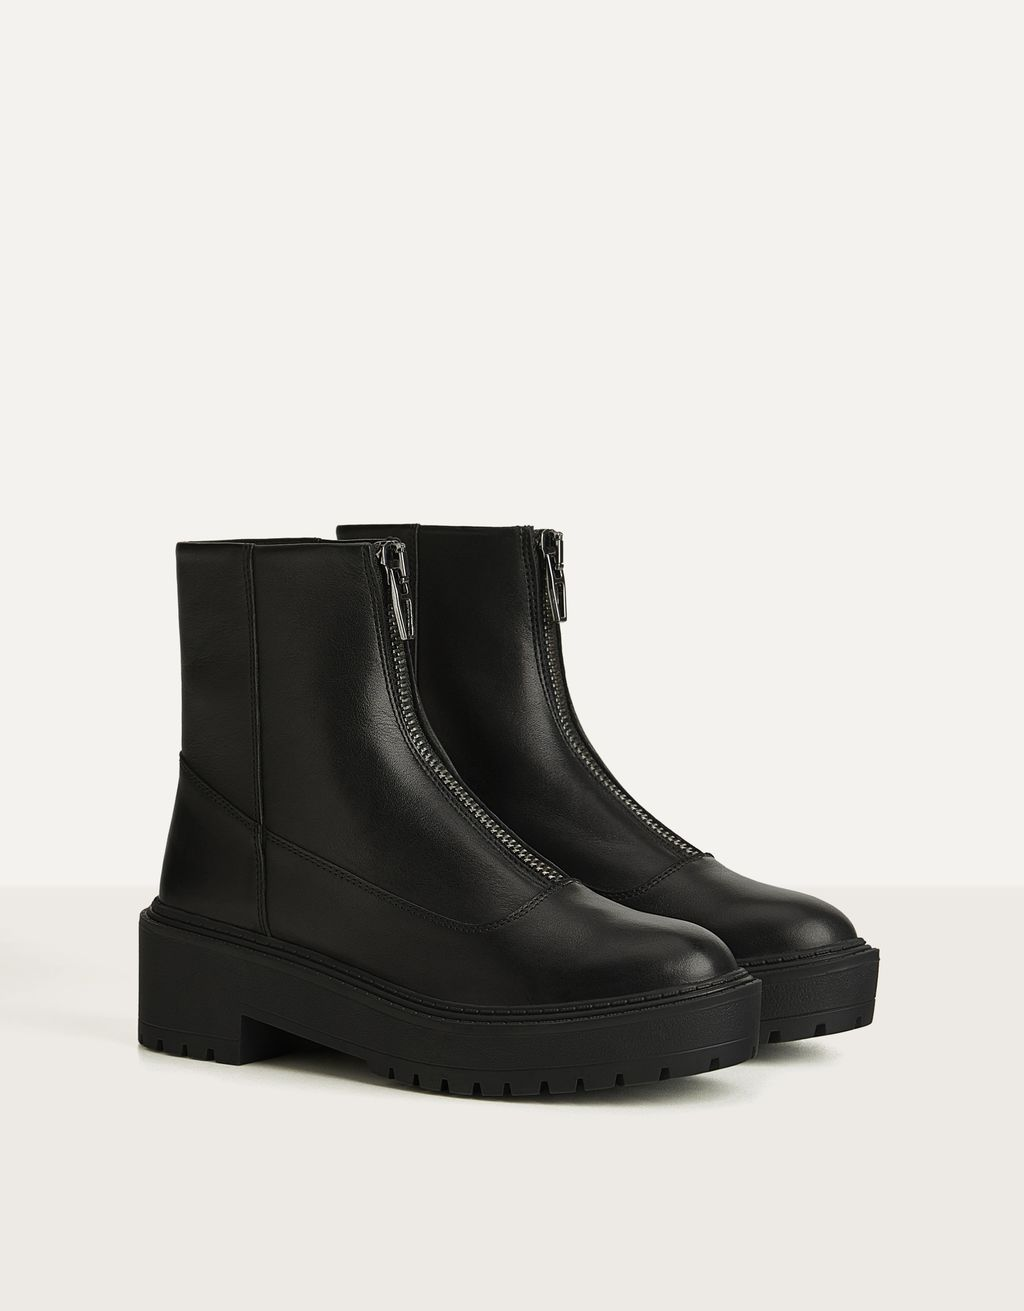 LEATHER ankle boots with zippers